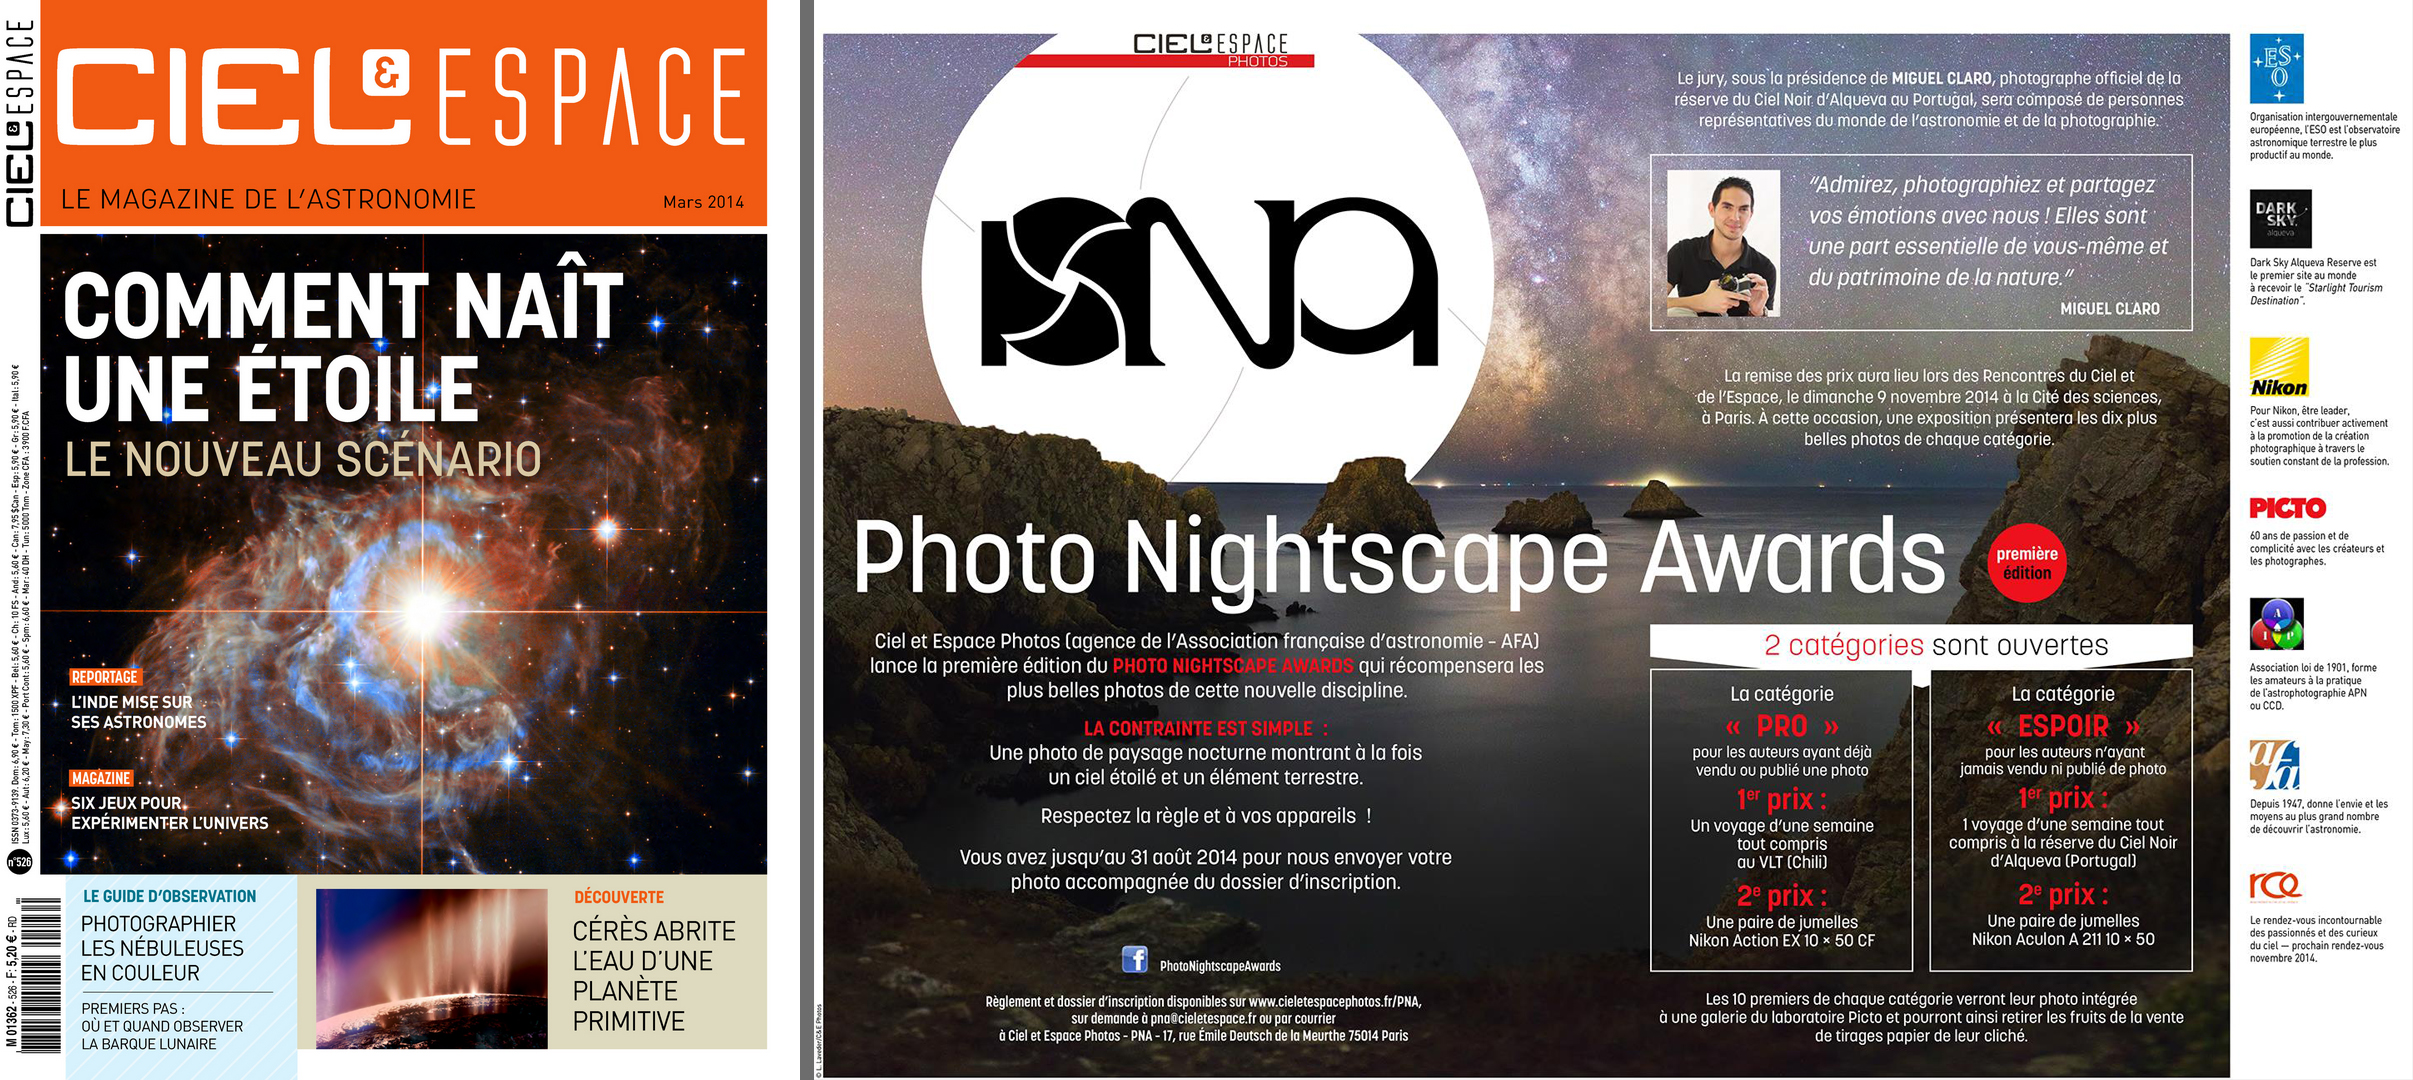 CieletEspace-PNA-March2014-WP